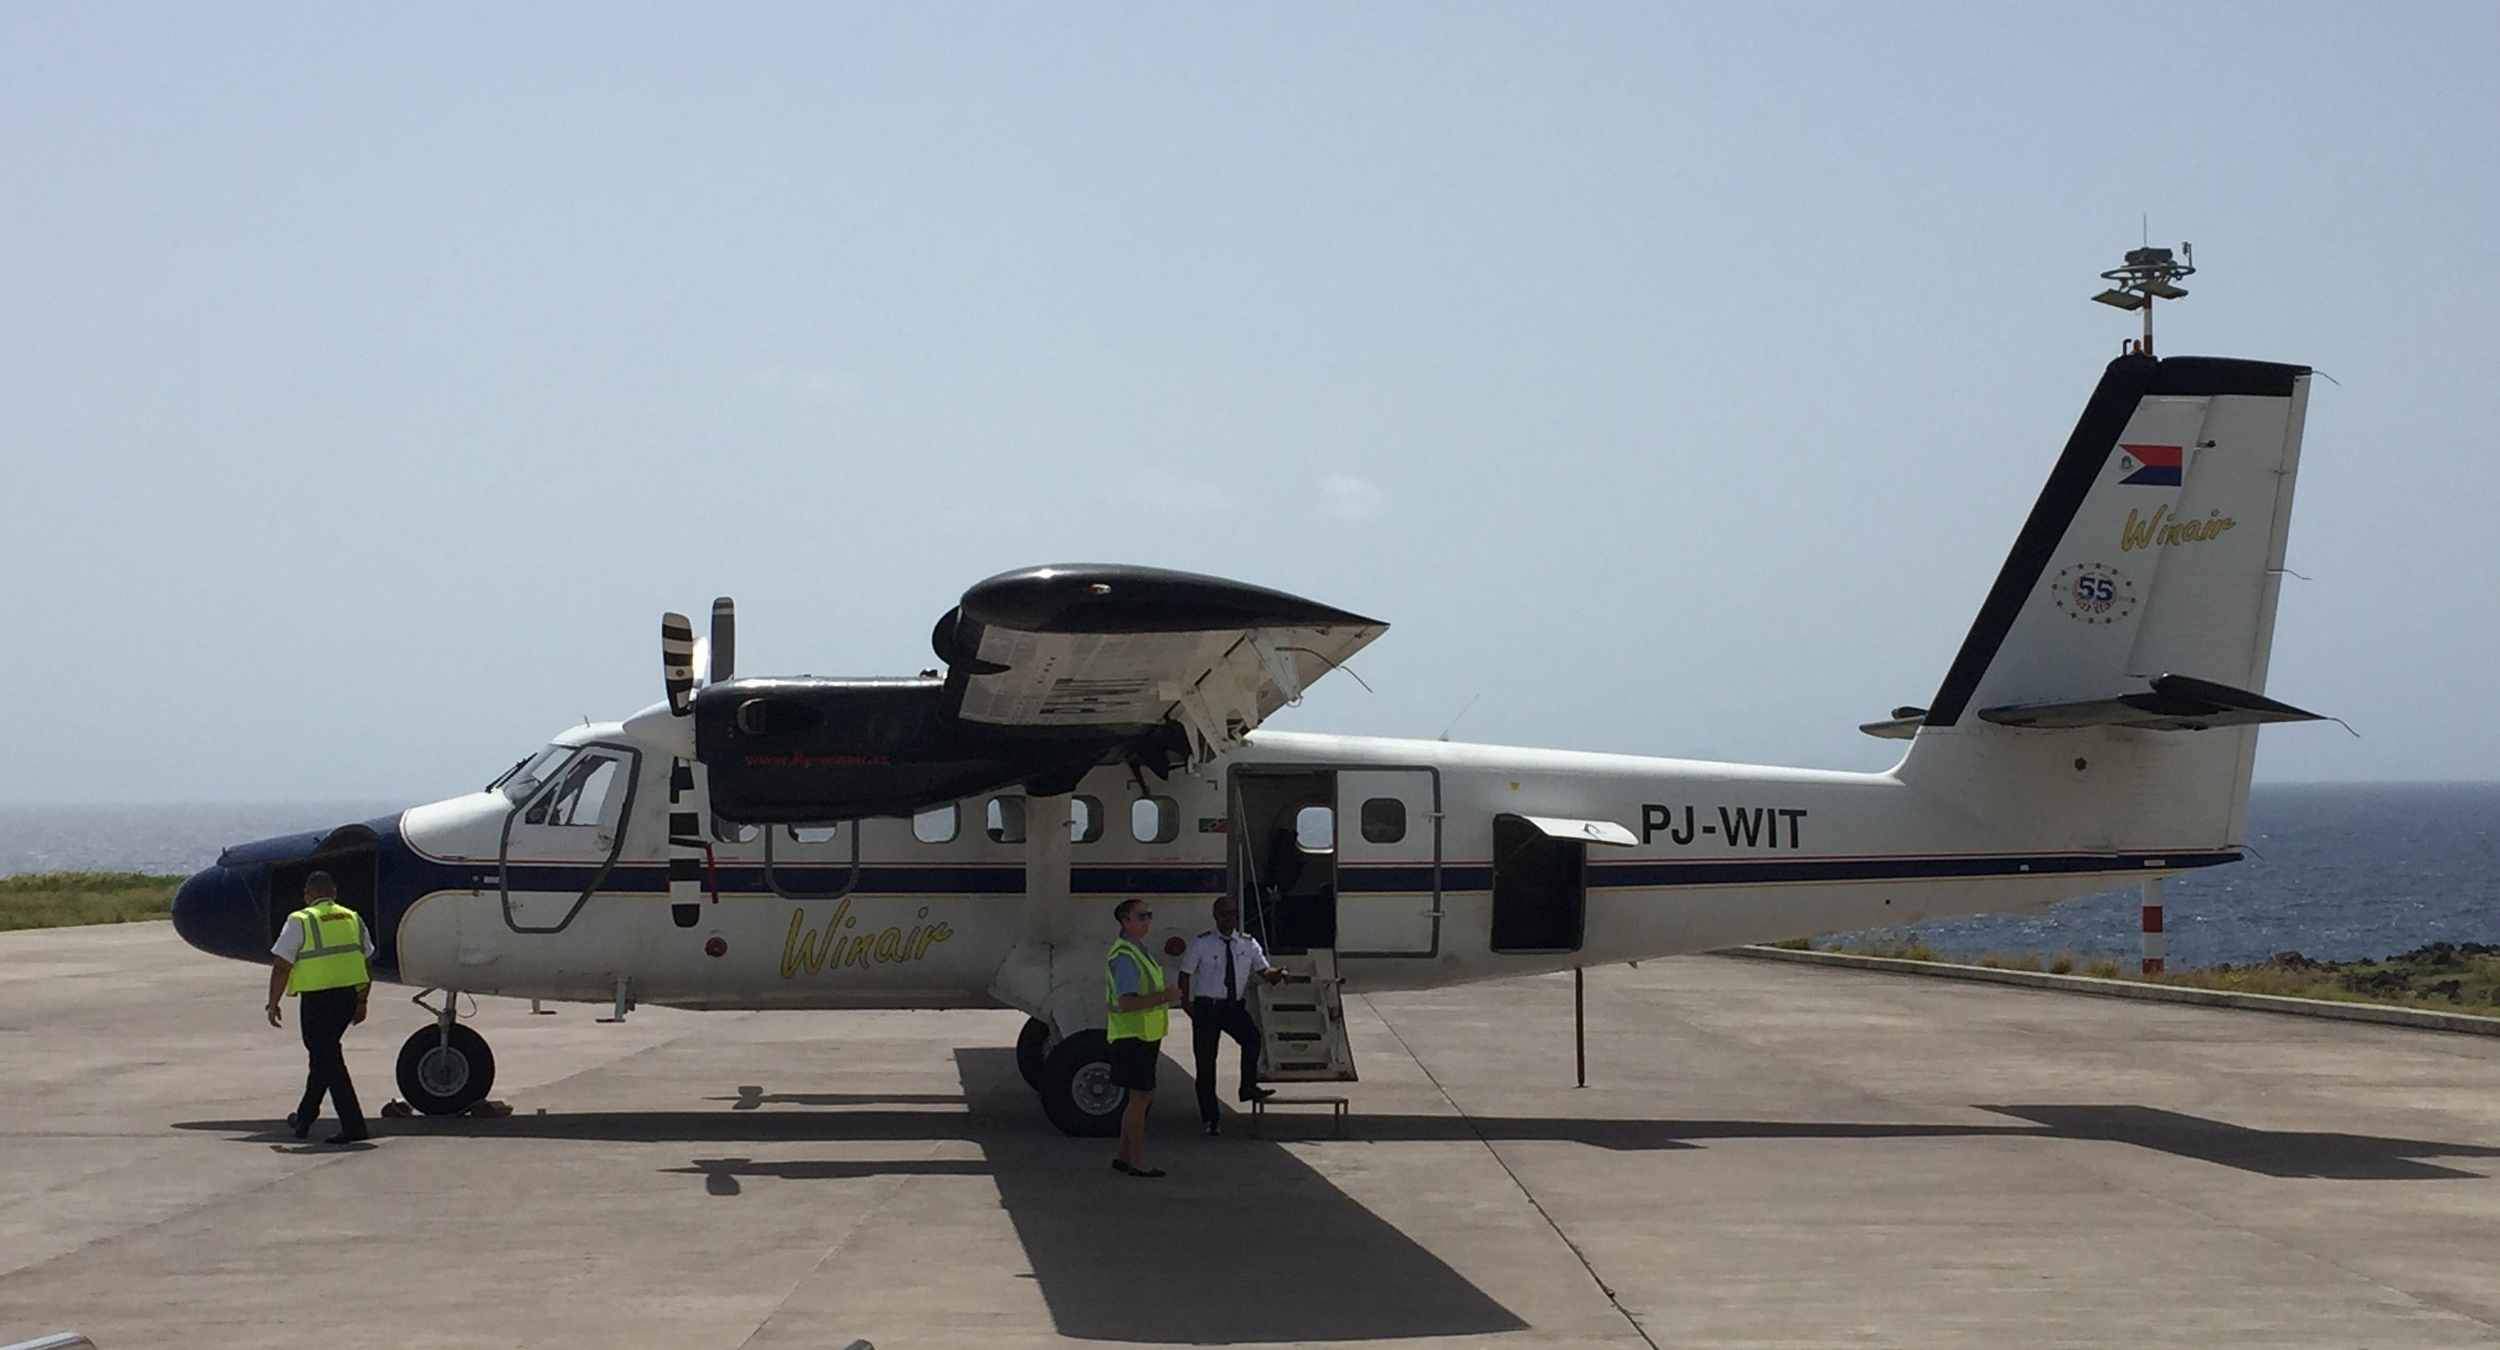 The Winair plane we took to Saba